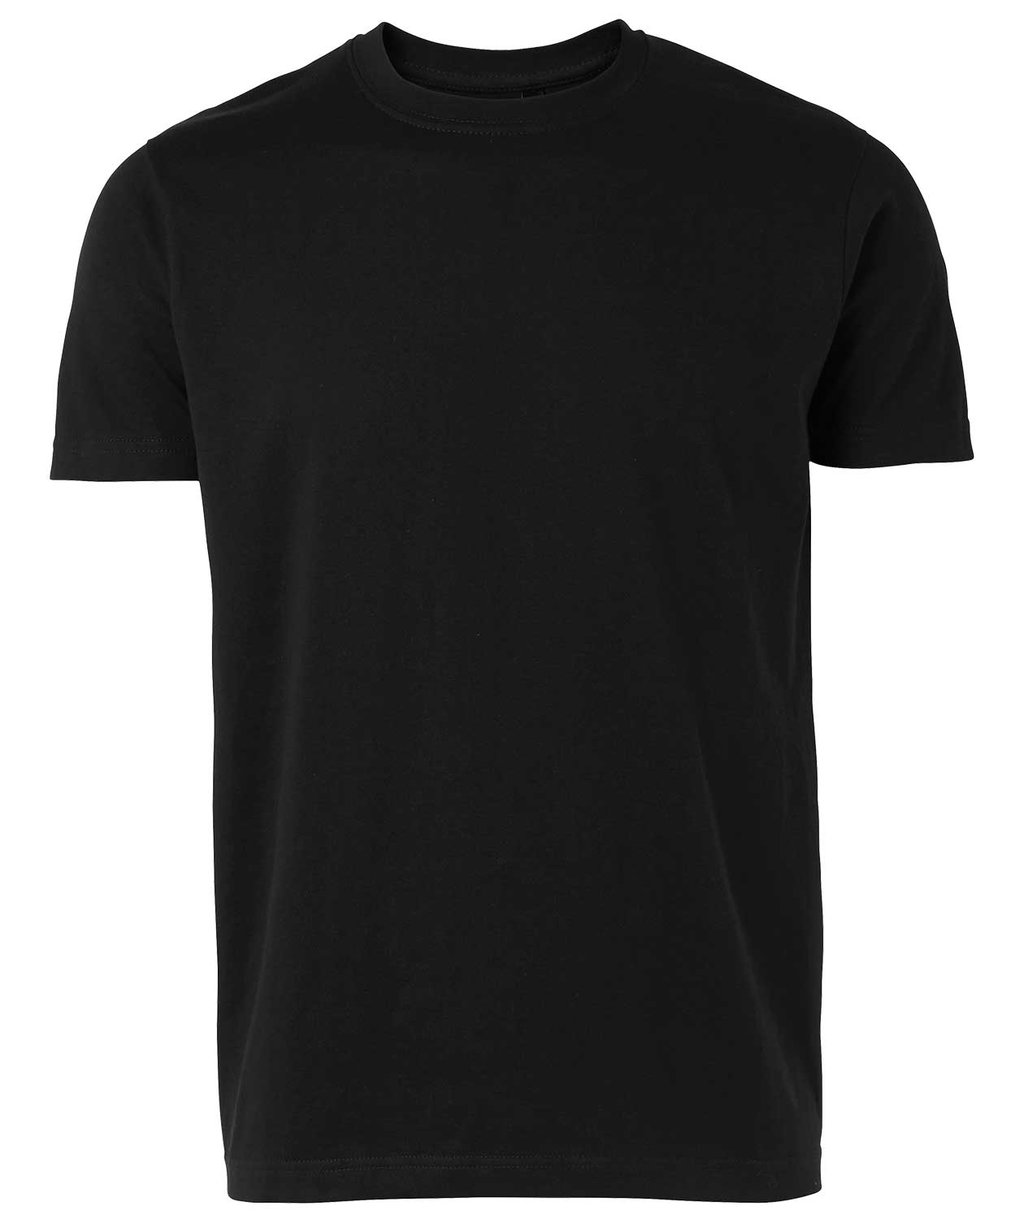 South West Basic T-shirt till barn, Svart